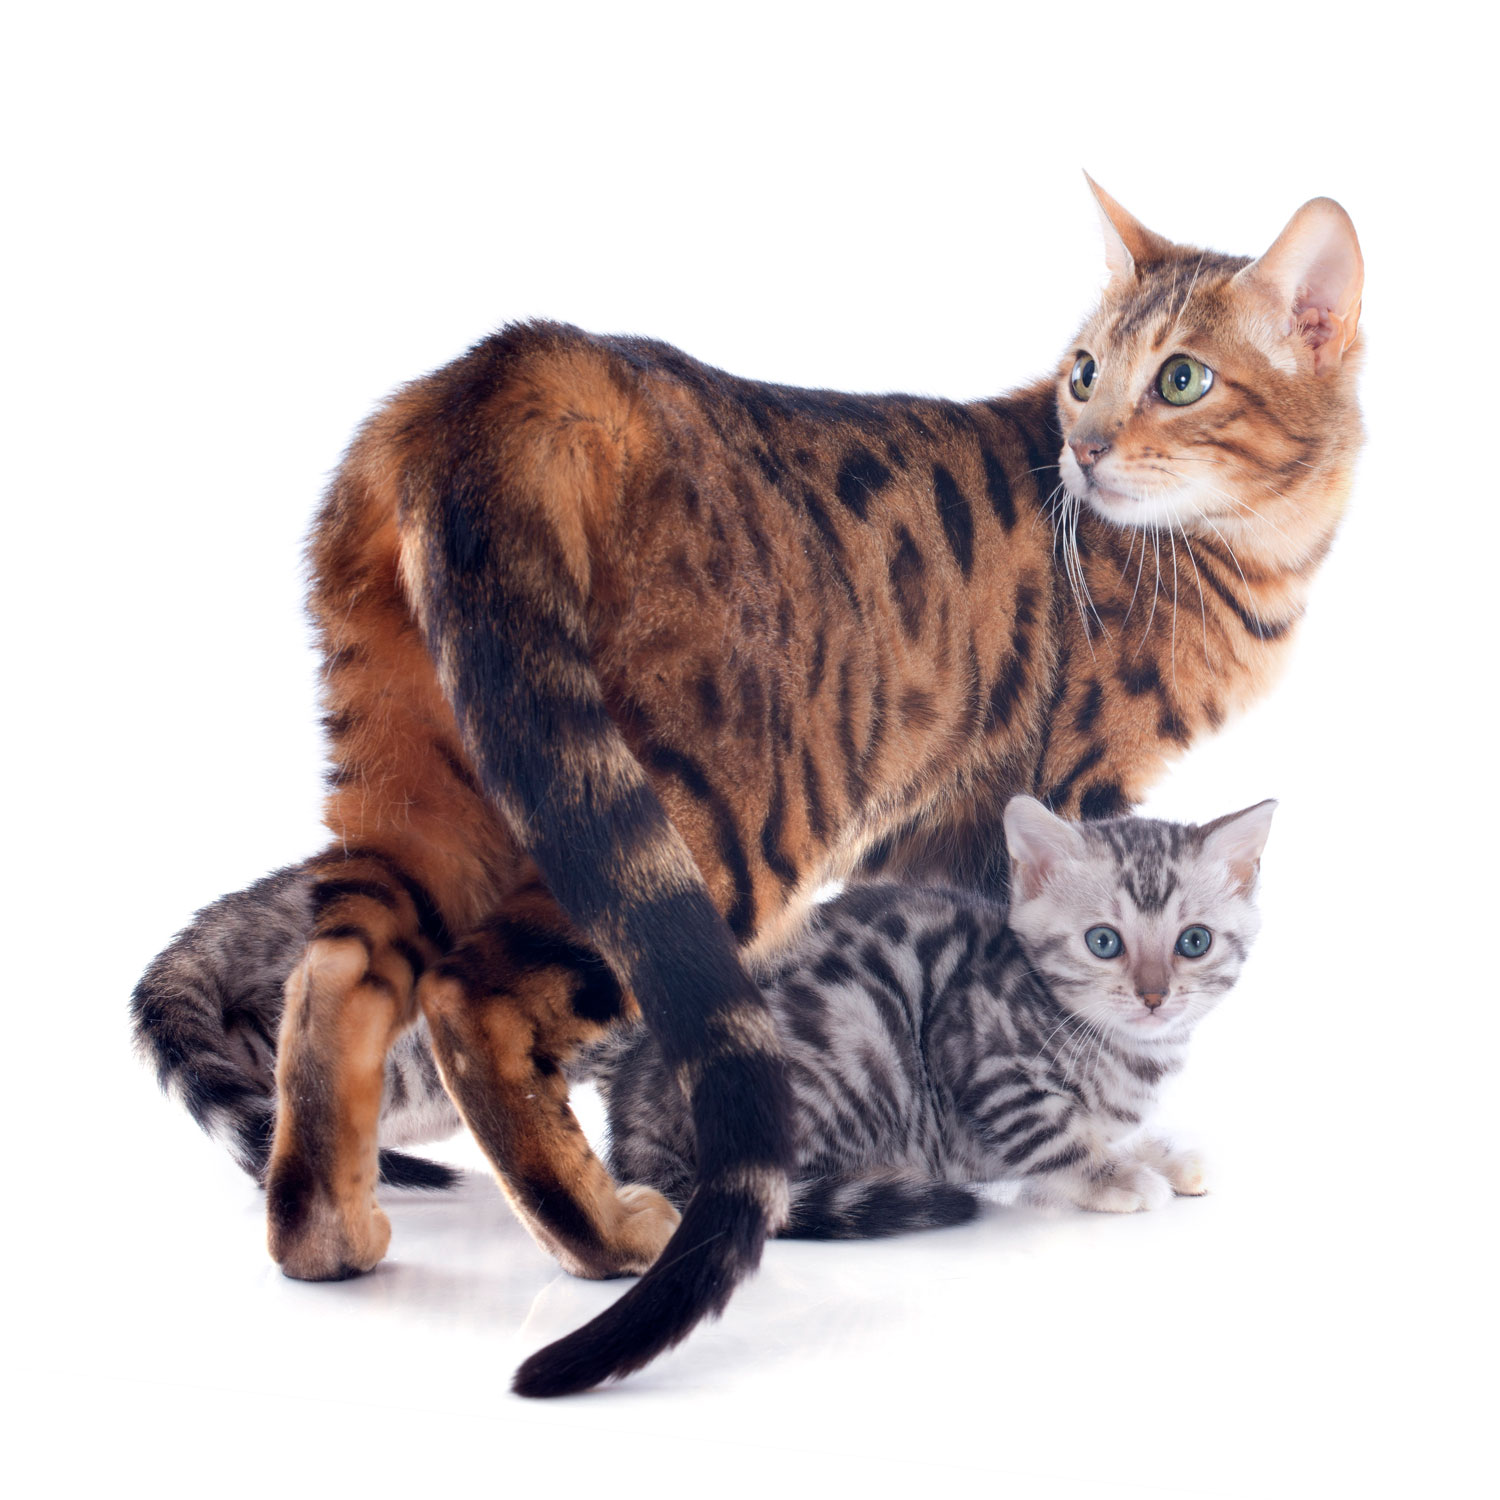 A big mother cat Bengal cat with her kittens underneath on a white background